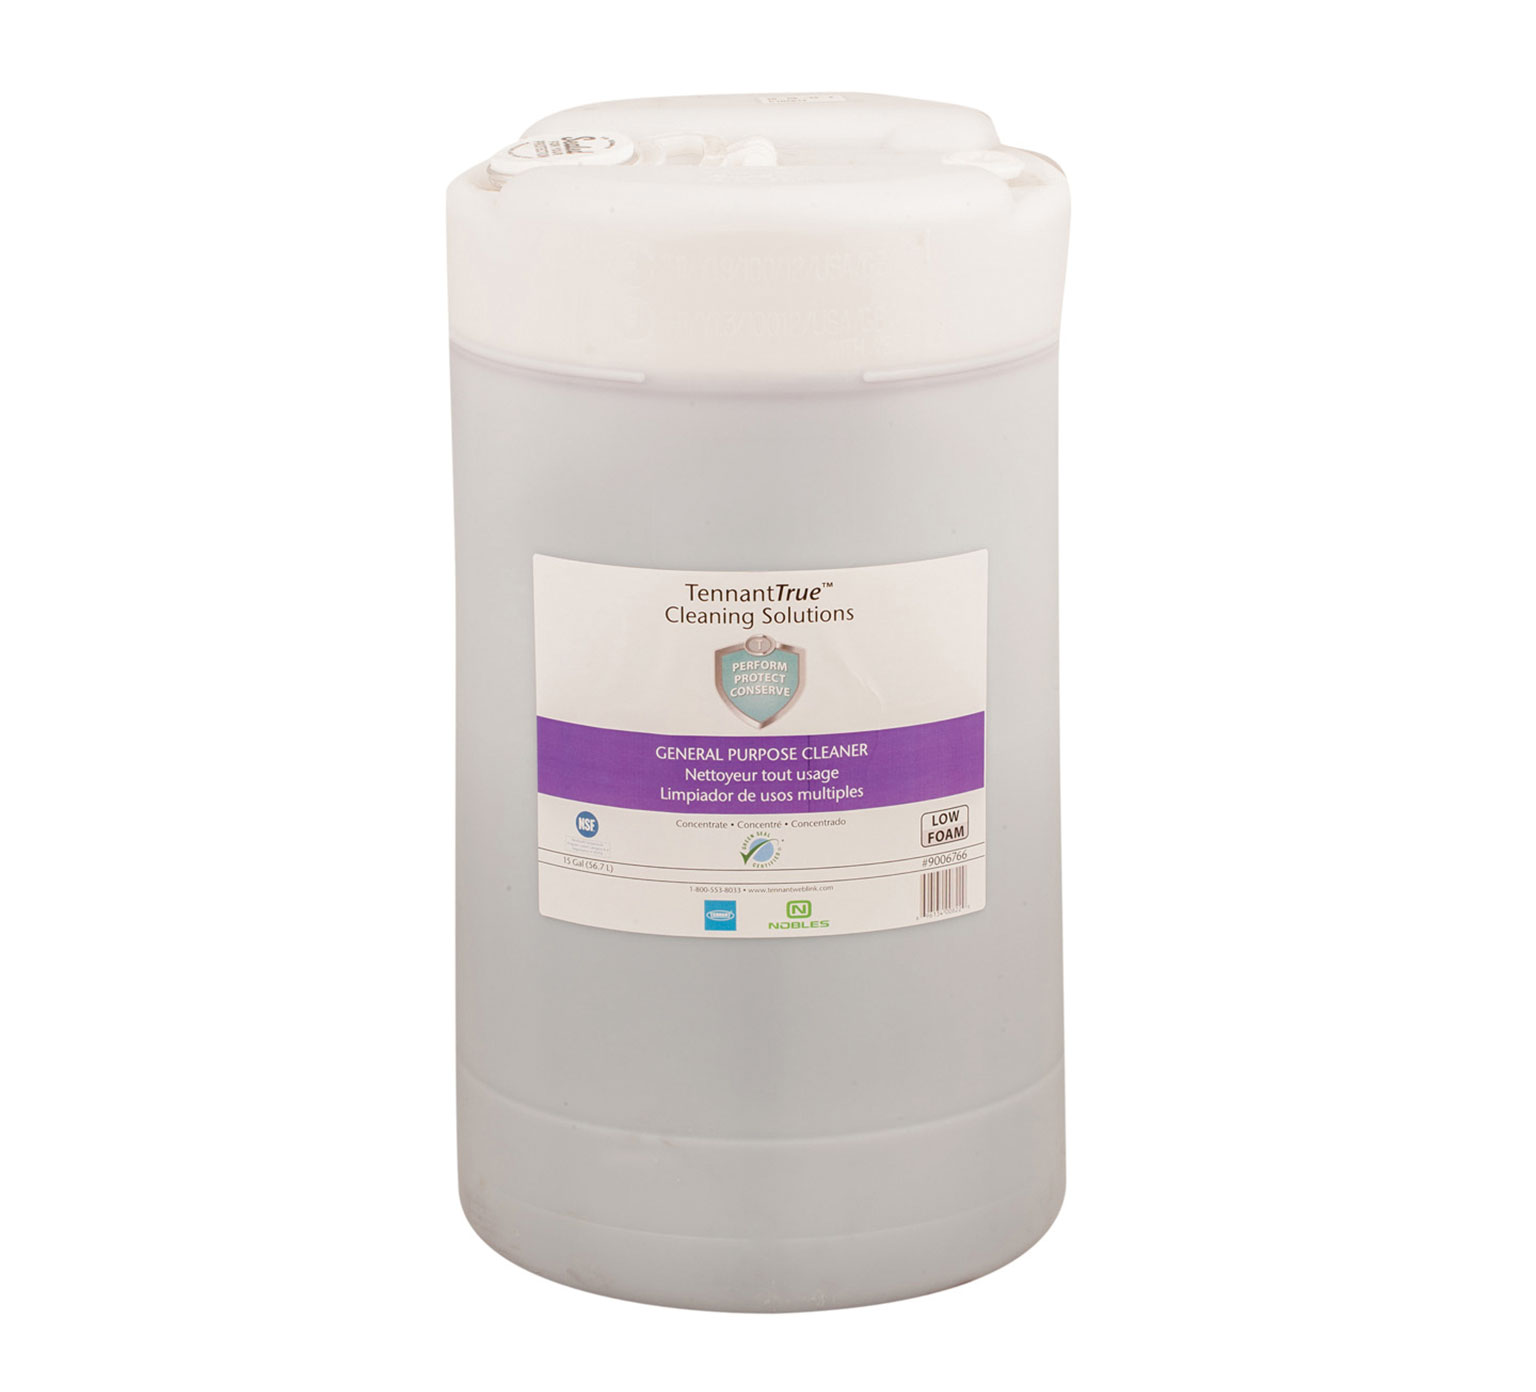 Tennant Purple Neutral Purpose Cleaner 15 Gallon